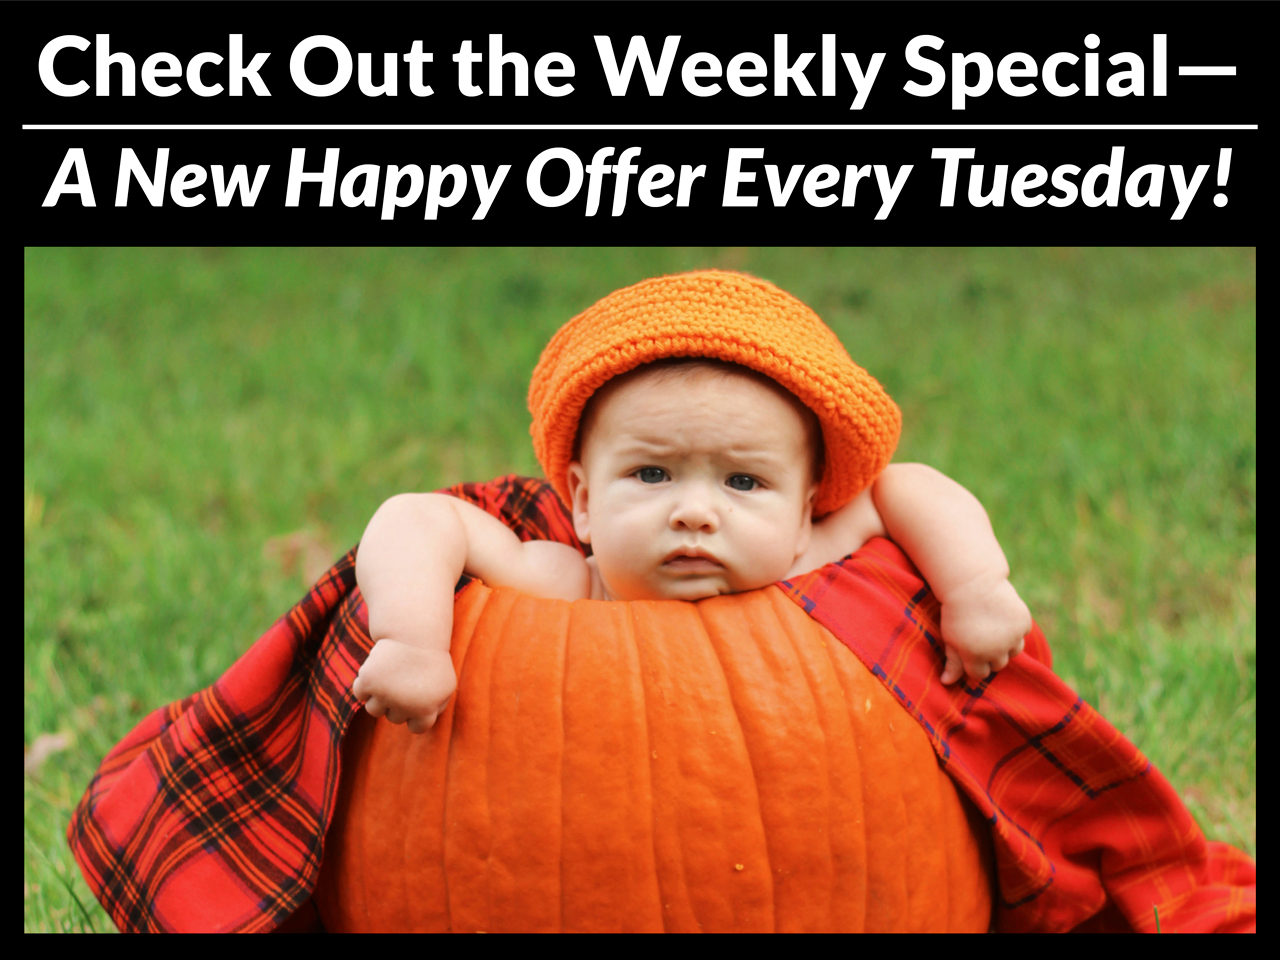 Check out the Weekly Specials